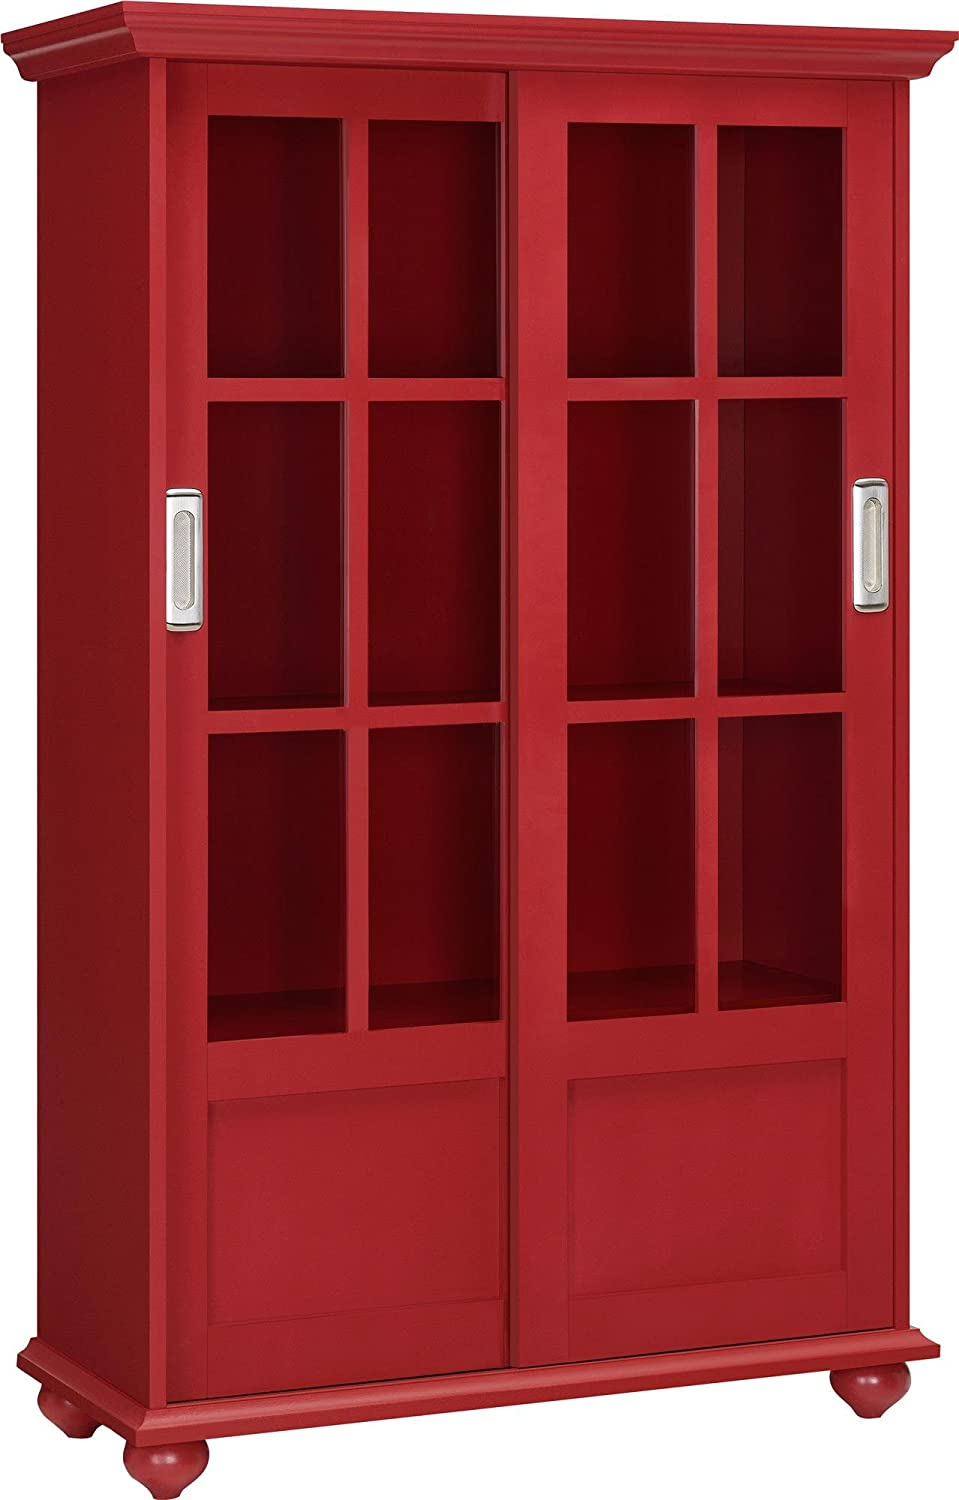 Amazon.com: Altra Aaron Lane Bookcase with Sliding Glass Doors, Red:  Kitchen & Dining